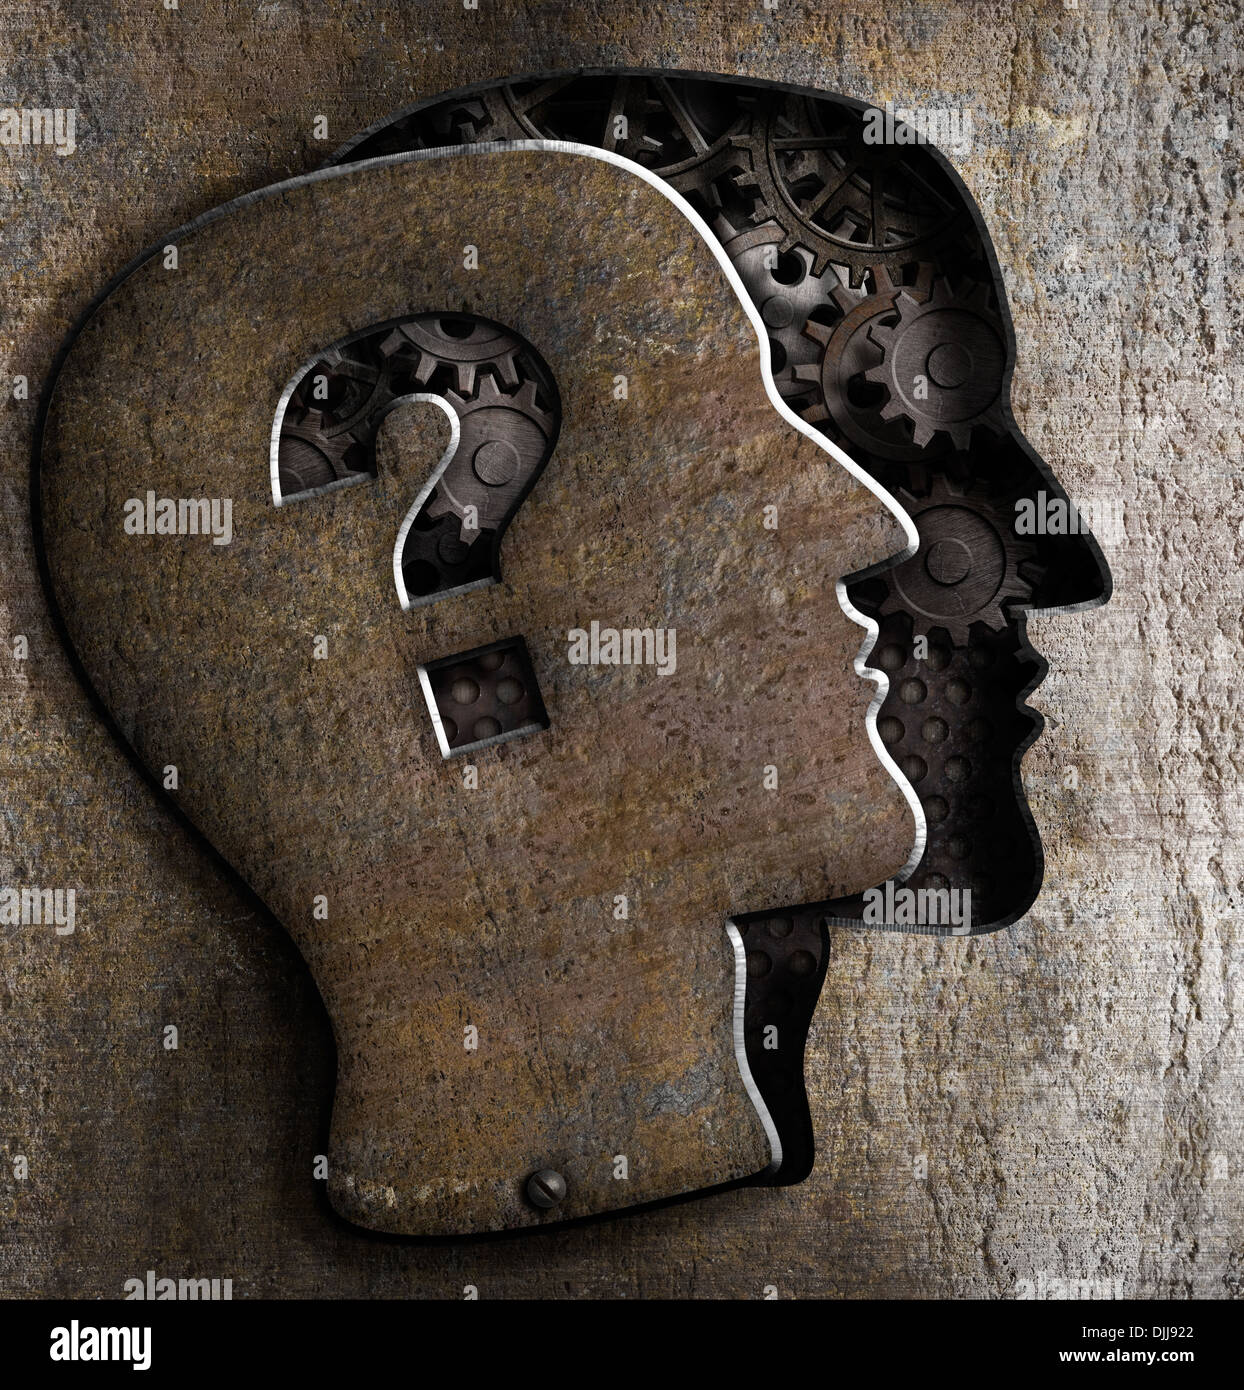 Human brain open with question mark on metal lid - Stock Image